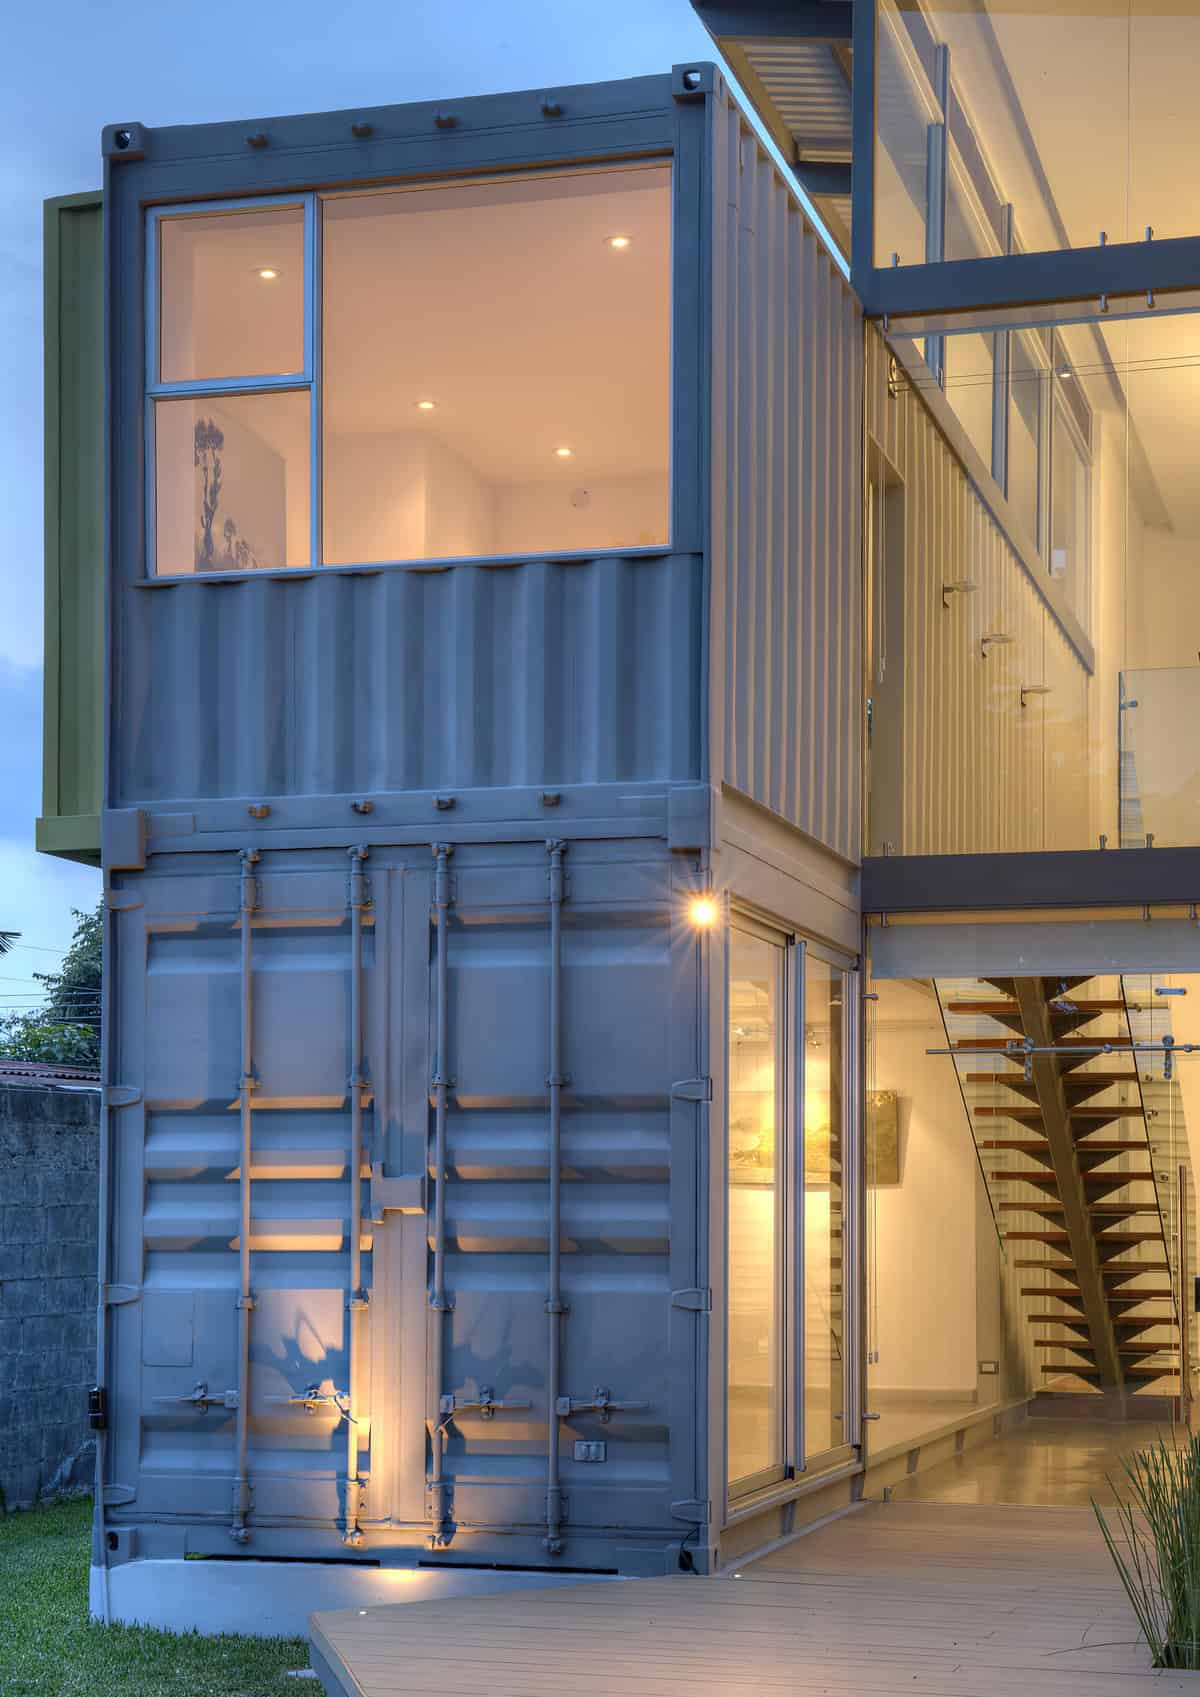 stunning-2-story-home-8-shipping-containers-14 I Shaped House Floor Plans on t ranch modular home plans, cedar home plans, horse barn home plans, modern u-shaped home plans, modern modular home plans, c shaped house plans, irregular shaped house floor plans, small l shaped home plans, triangle shaped house plans, l shaped garage plans, l-shaped range home plans, i shaped kitchens, l shaped kitchen floor plans, large barn home plans, post modern home plans, pie shaped lot house plans, h shaped house plans, v-shaped home plans, u-shaped floor plans, u-shaped courtyard home plans,